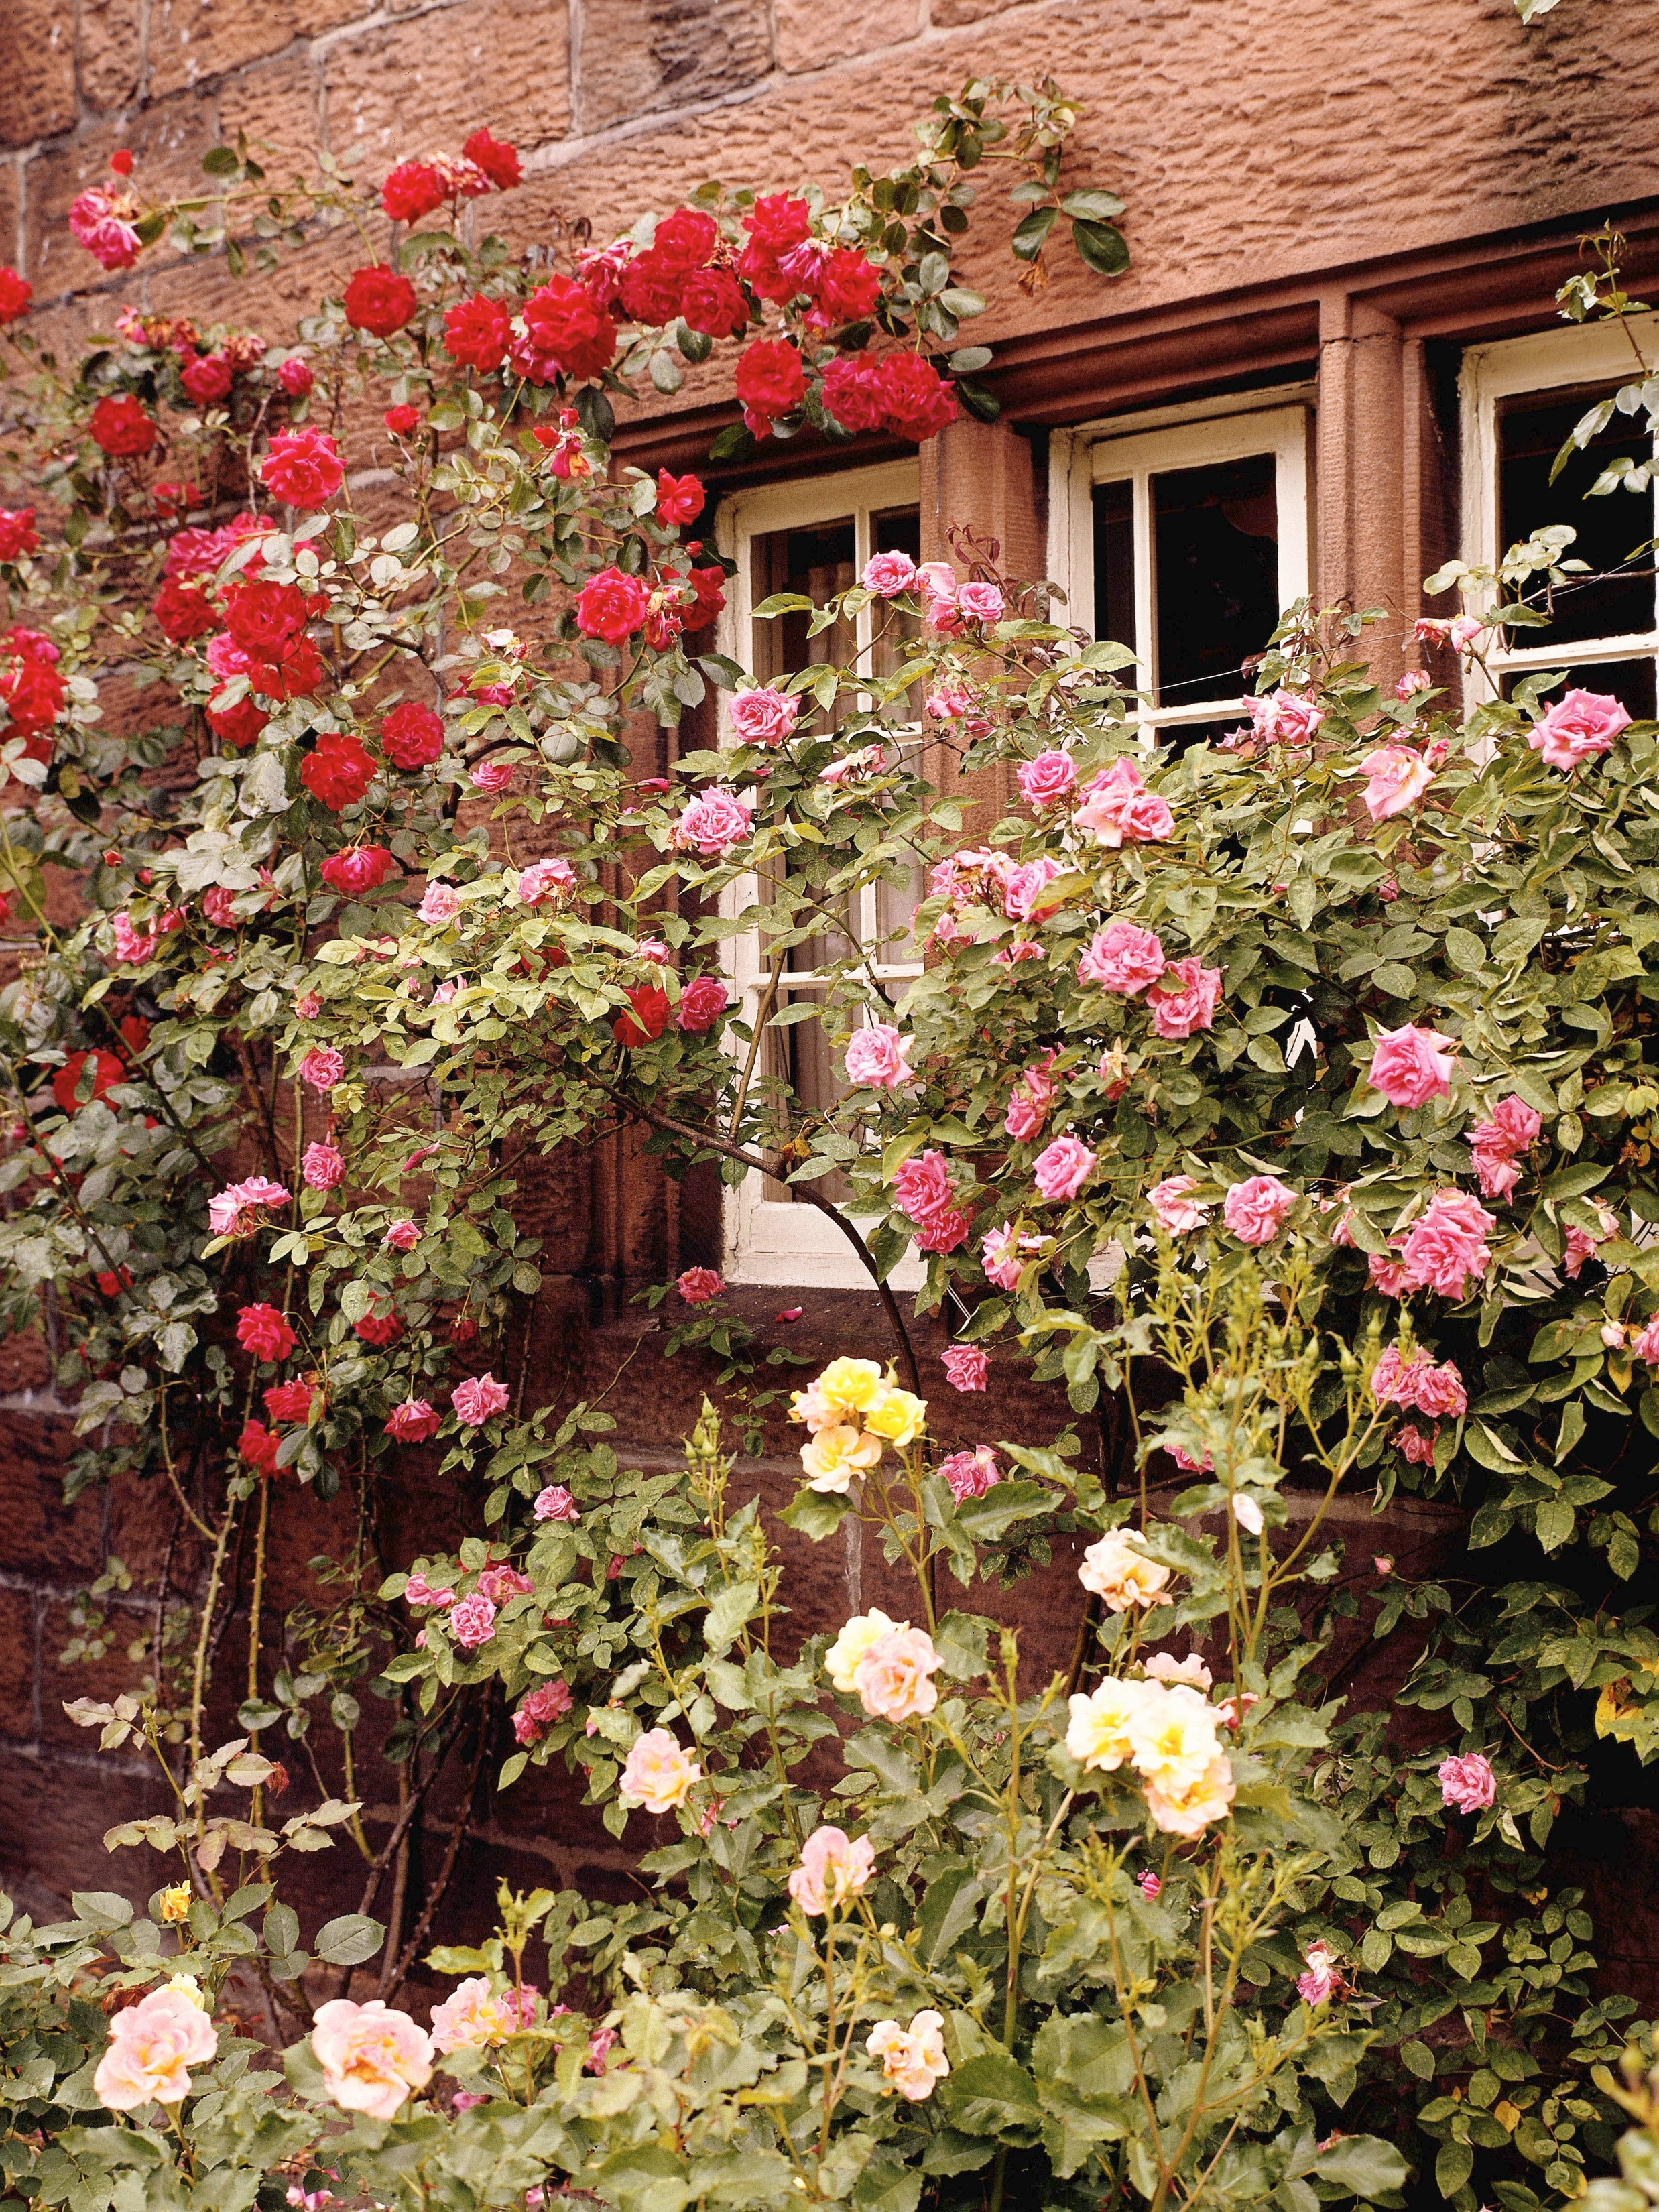 Why Is My Climbing Rose Growing Well But Not Blooming Any